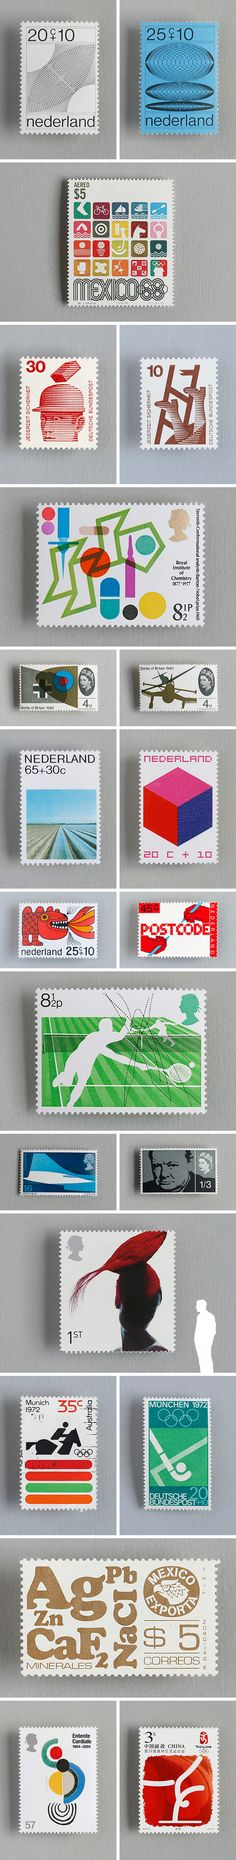 Northbank's stamp collection